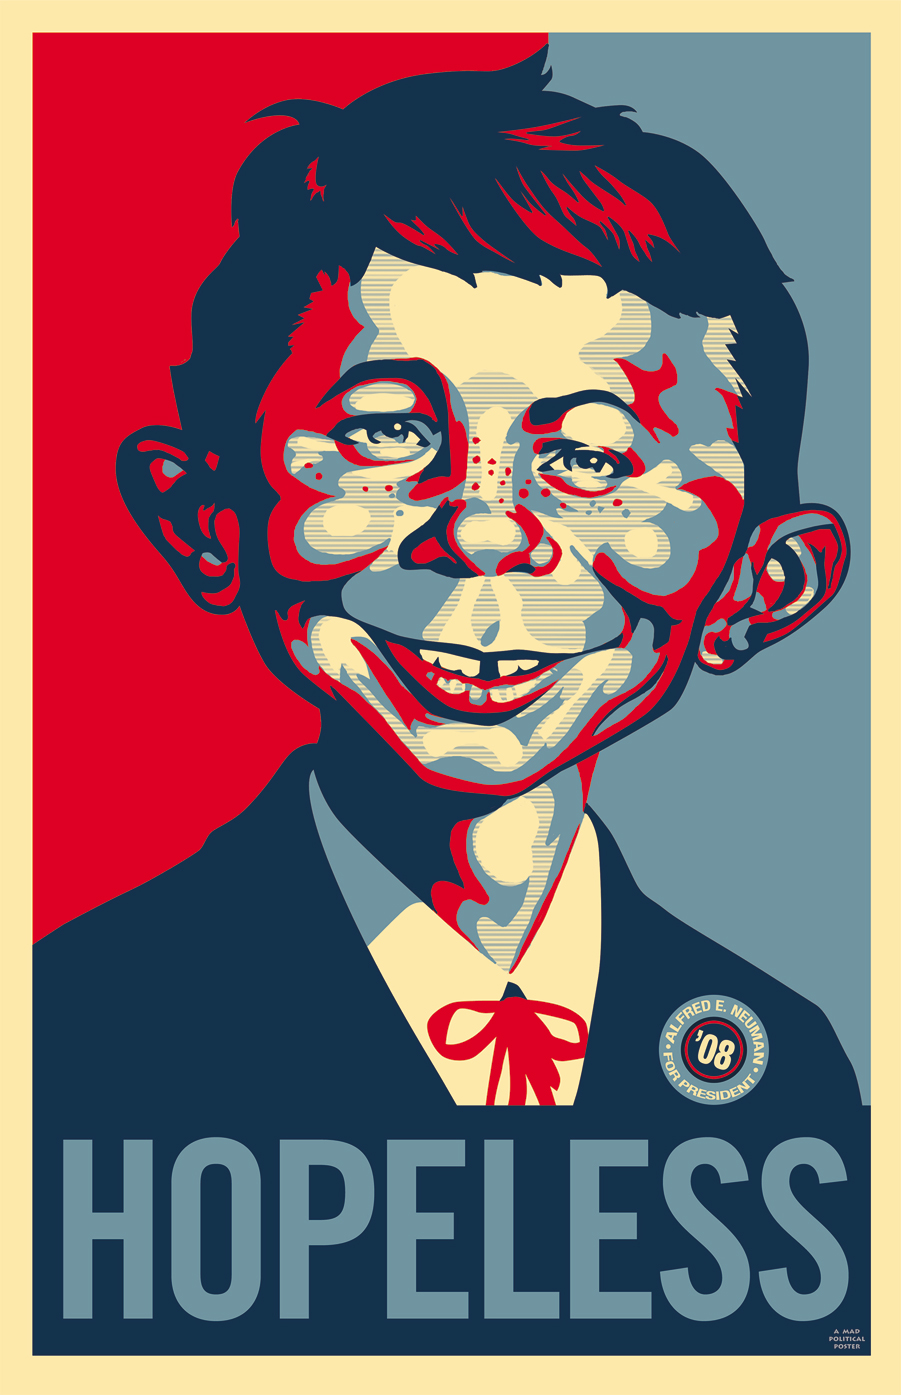 Obama HOPE Poster Parodies